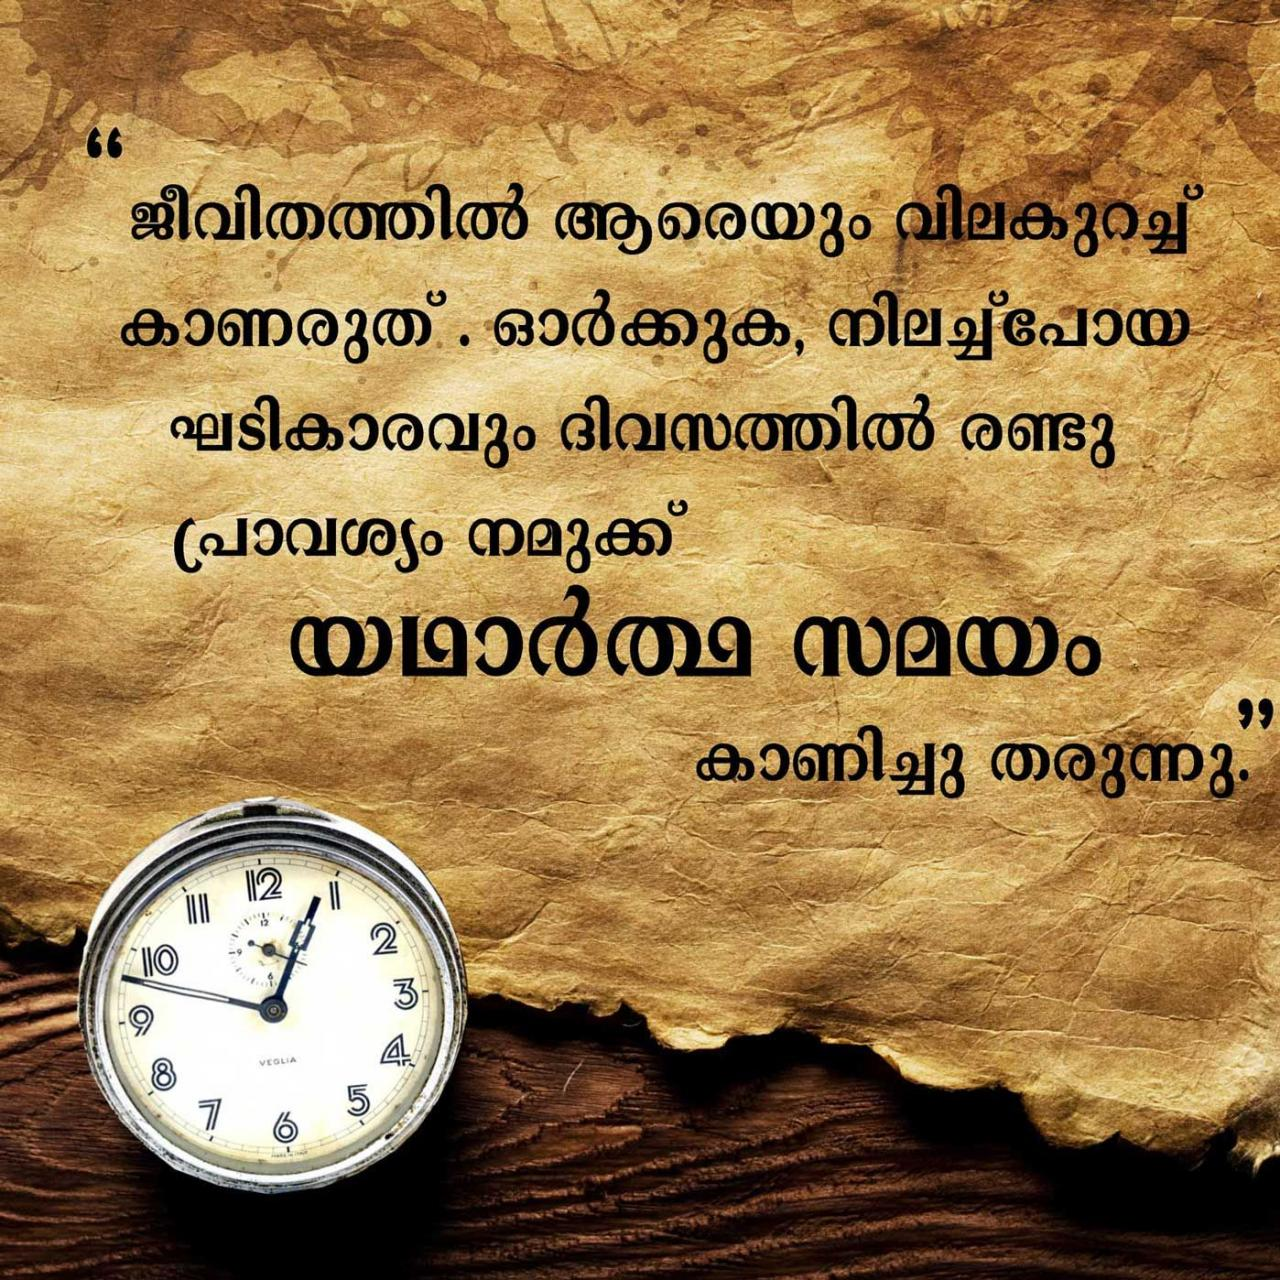 Get Malayalam Wisdom Love Motivational Funny Proverb Life Success And